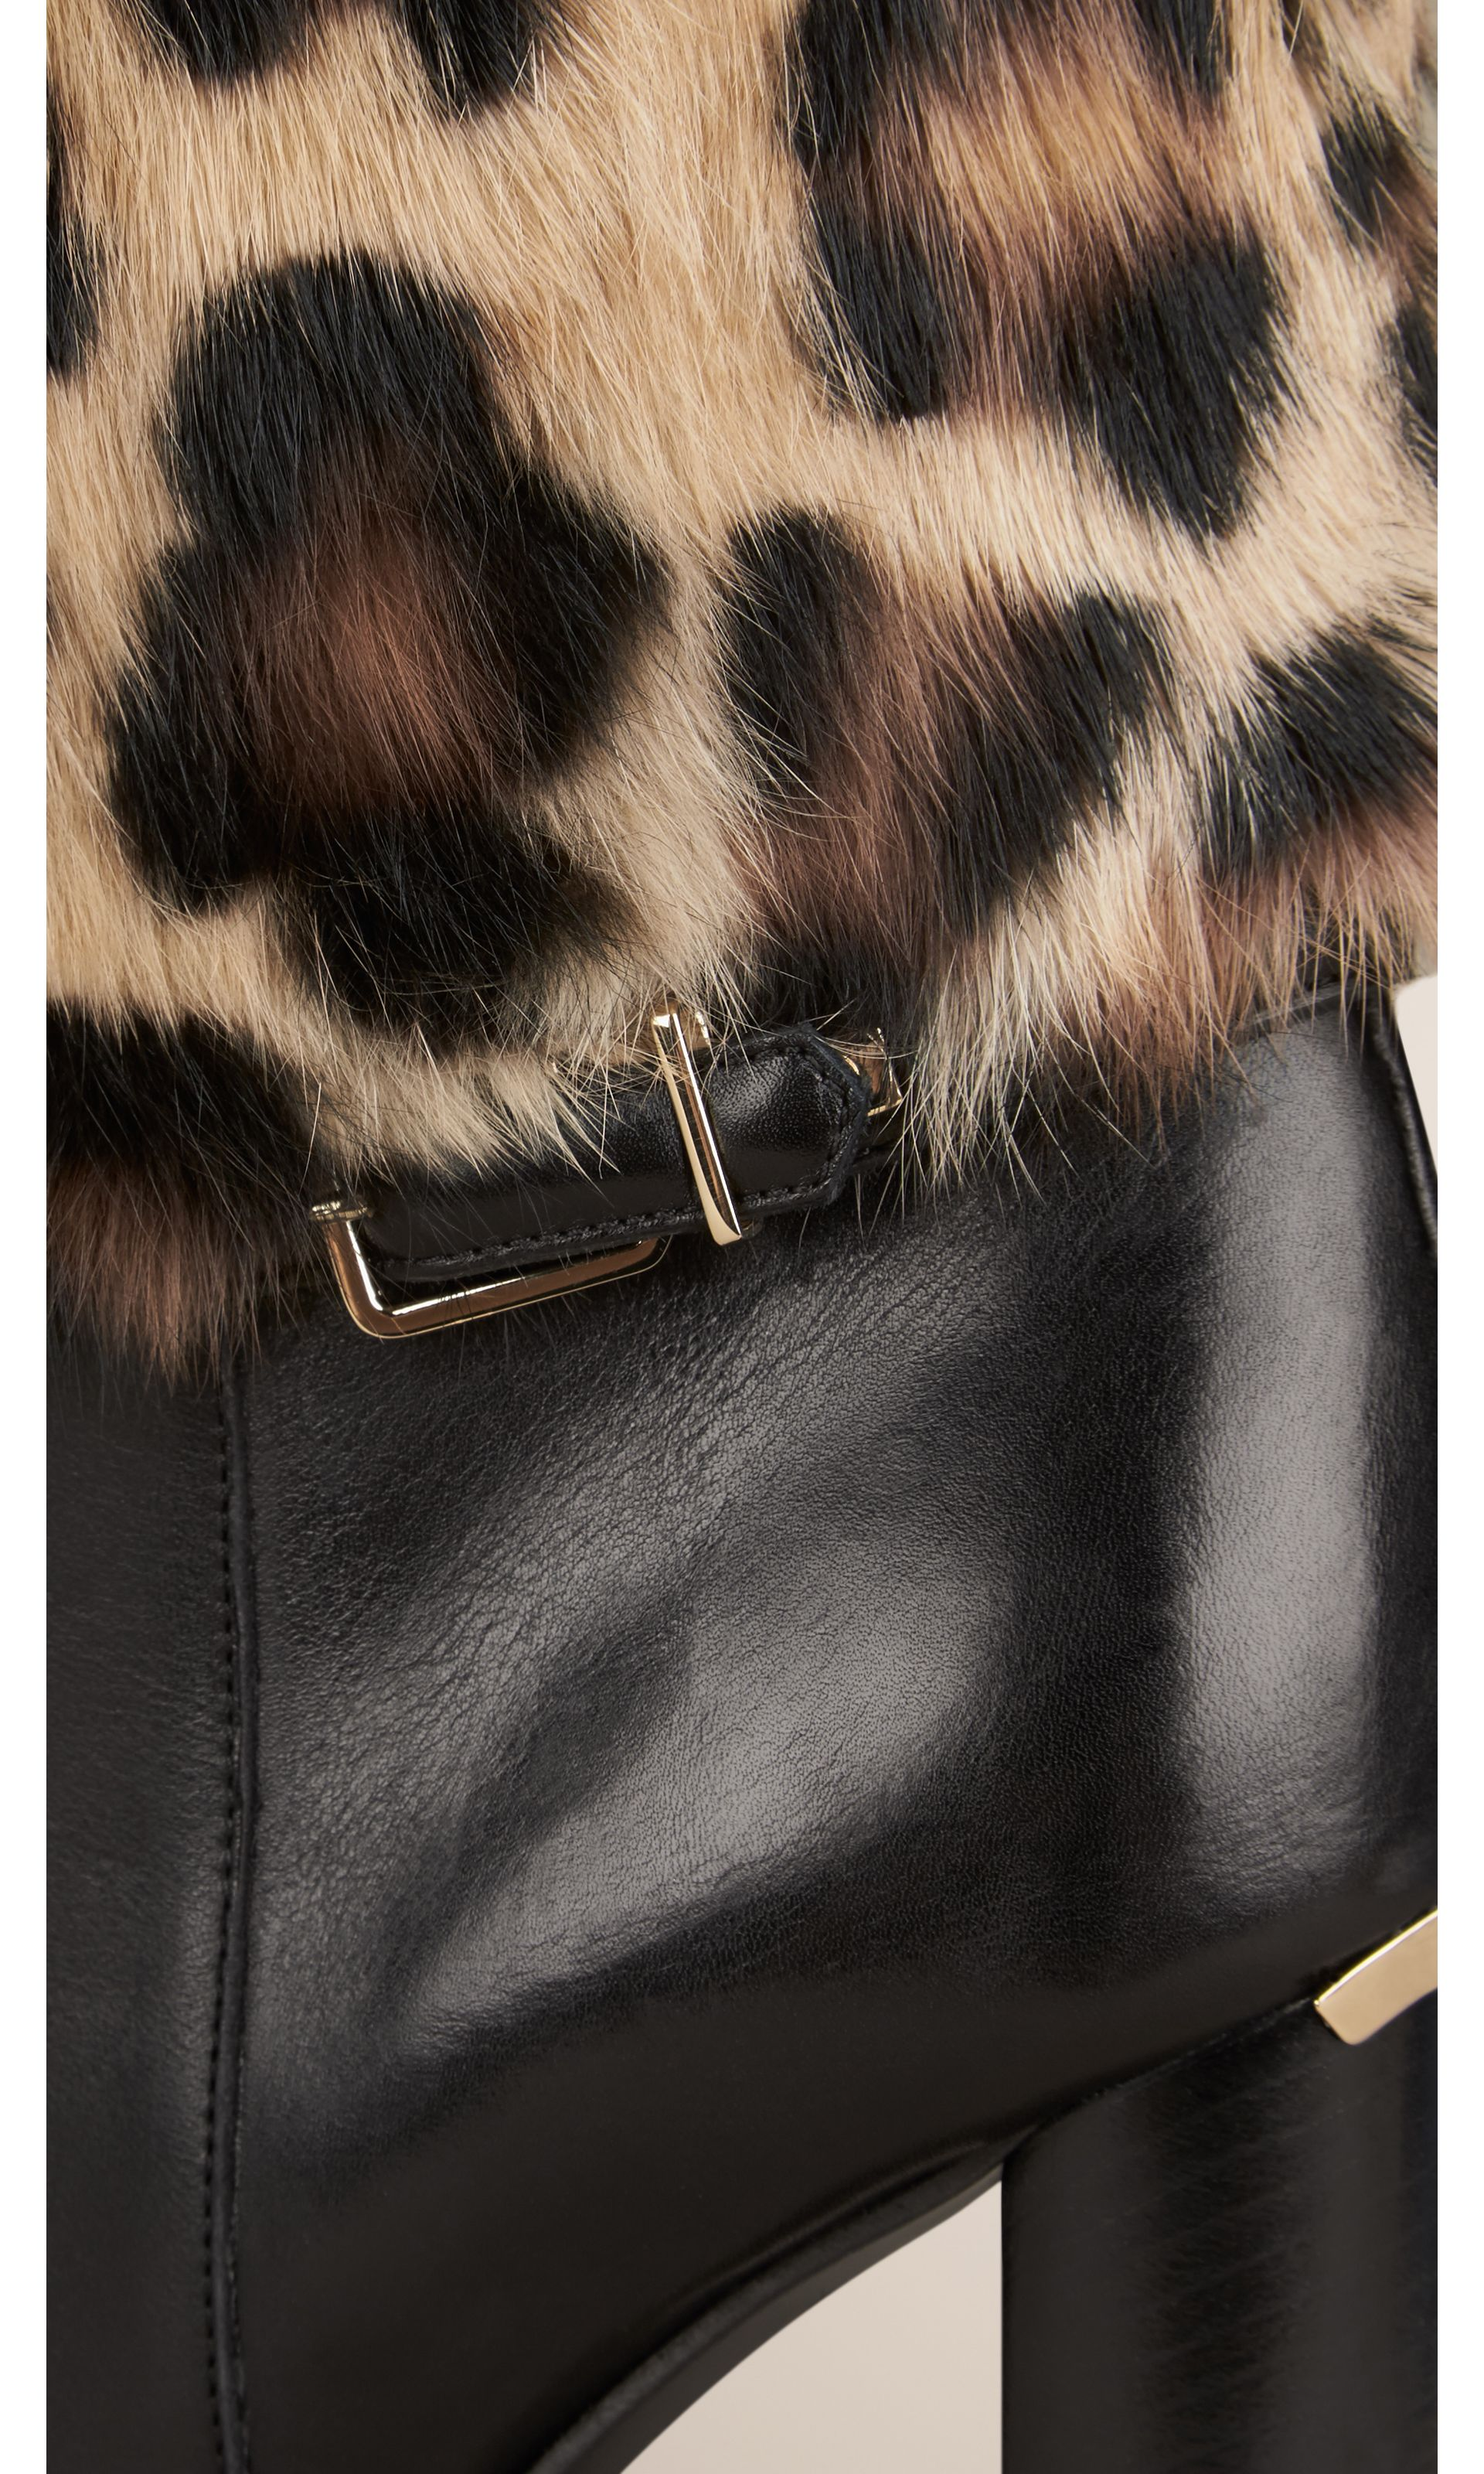 Animal Print Rabbit Fur and Leather Boots in Black - Women | Burberry United States - gallery image 4